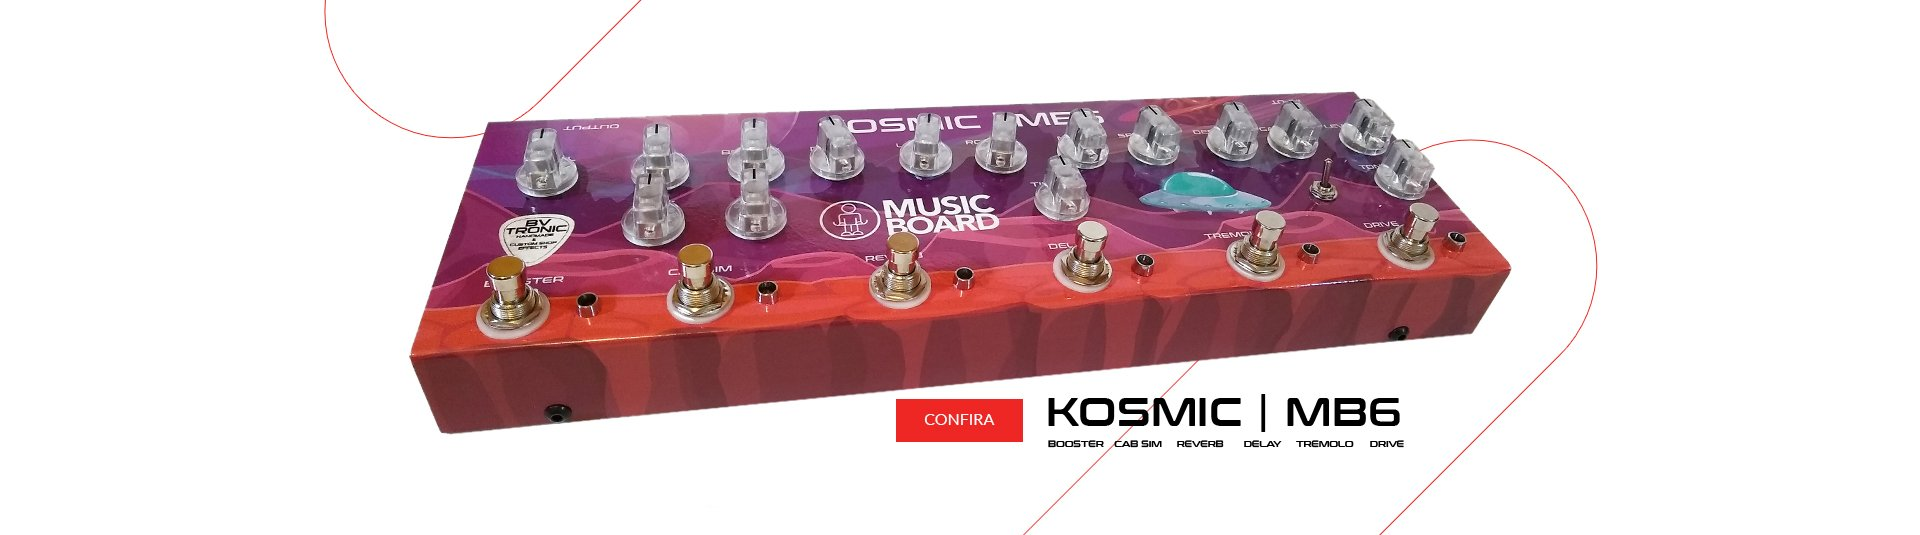 KOSMIC MB6